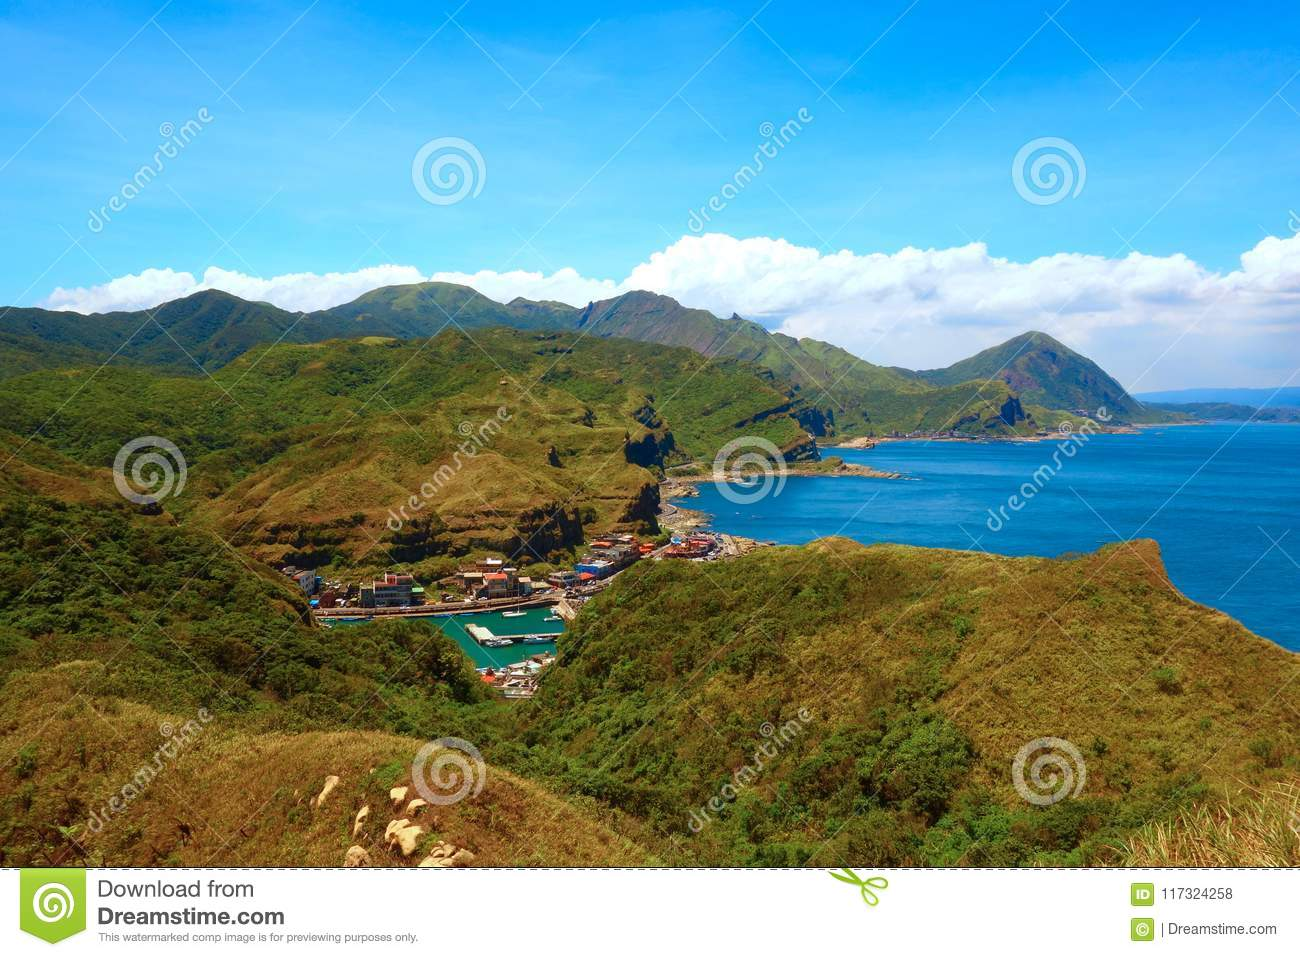 Cape Bitoujiao   View Of Mountains And Nature On The East Coast Of Taiwan,  Taipei